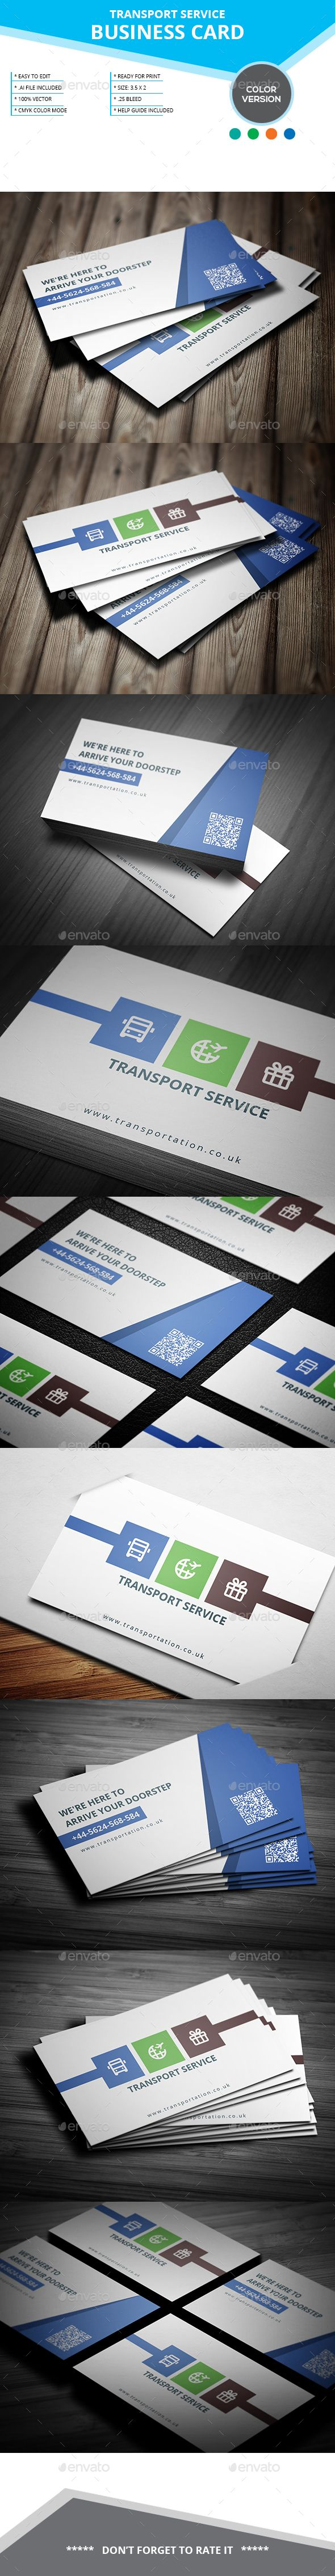 194 besten Business Cards Templates Bilder auf Pinterest